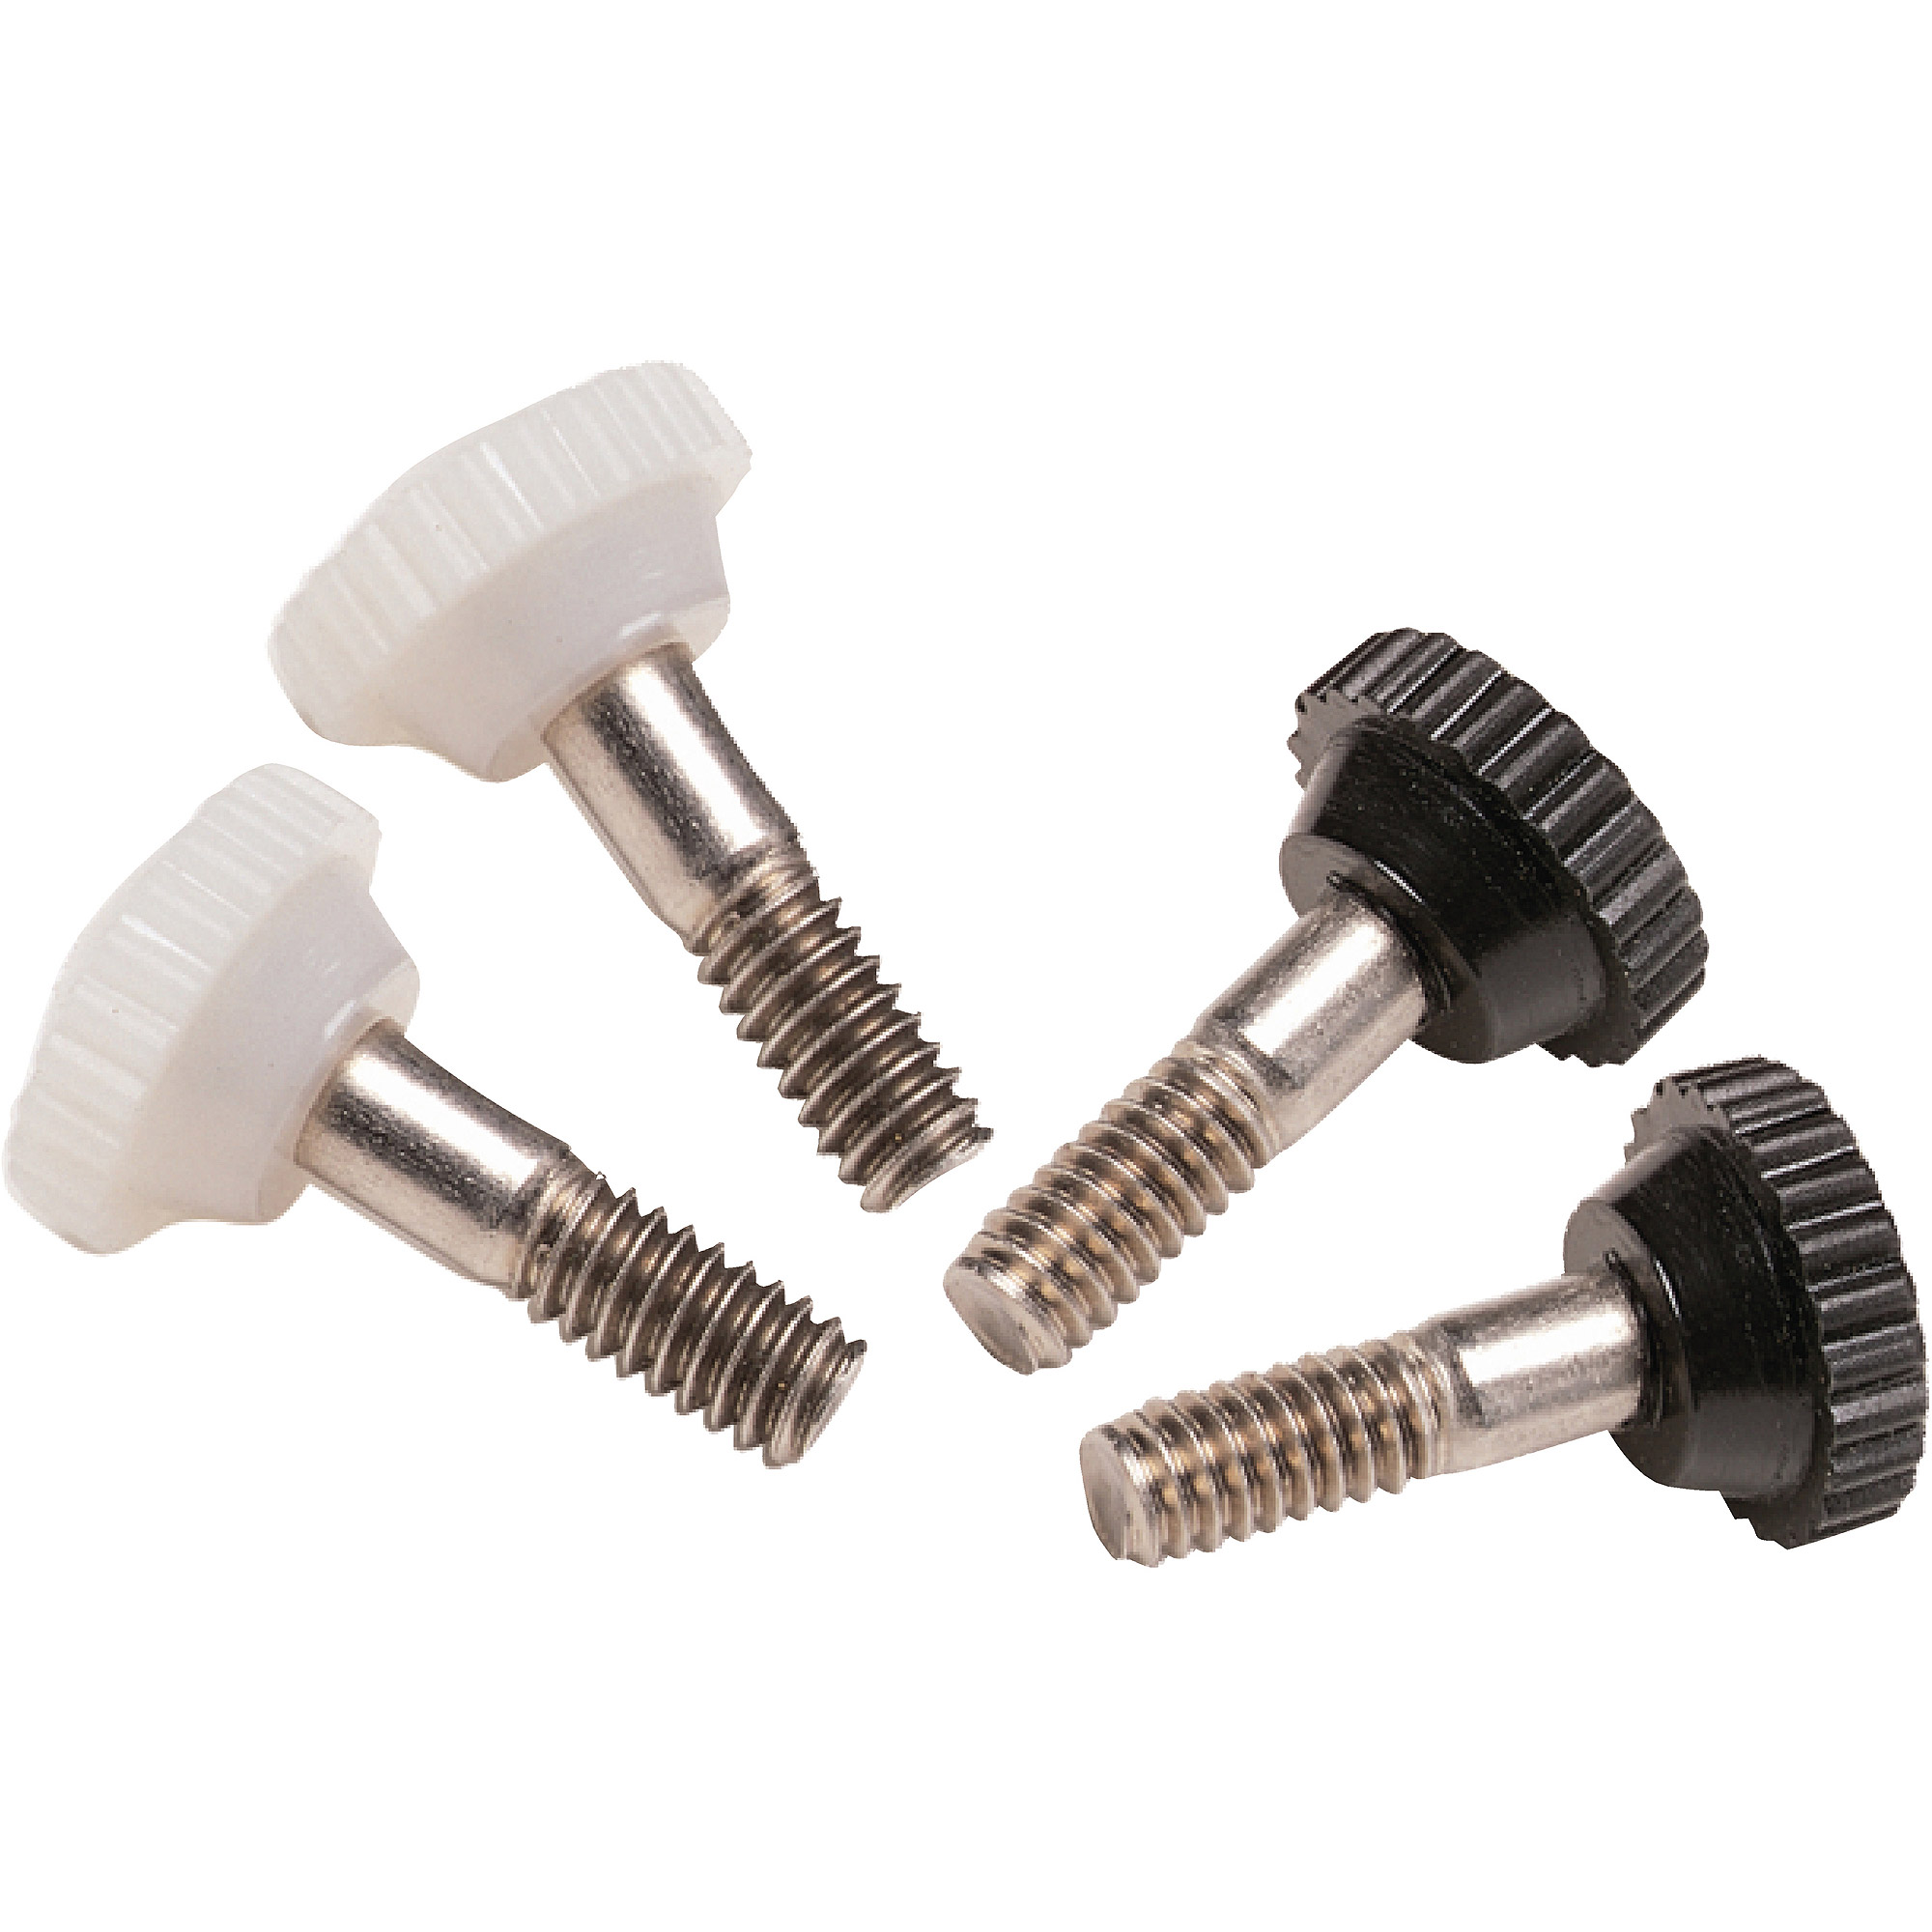 "Taylor Bimini Hinge Thumb Screw with 1/4"" x 1"" Threads, Sold as Pair"